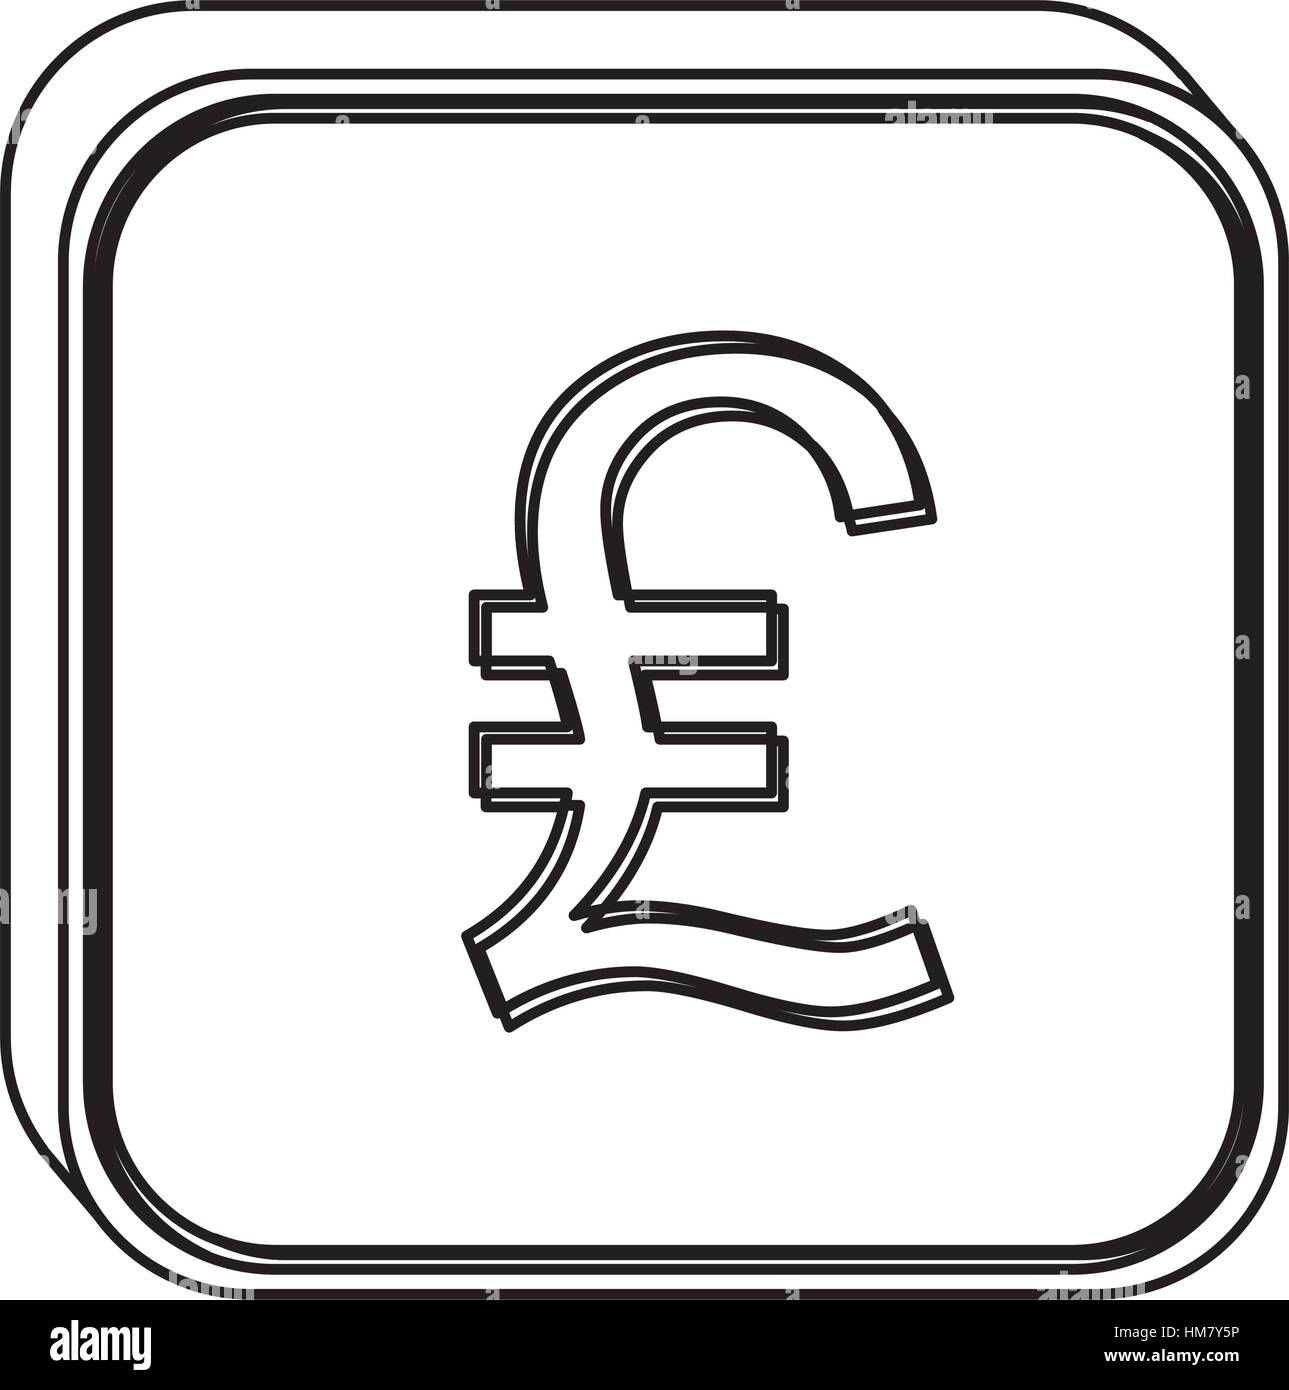 Monochrome square contour with currency symbol of lira italy vector monochrome square contour with currency symbol of lira italy vector illustration biocorpaavc Image collections